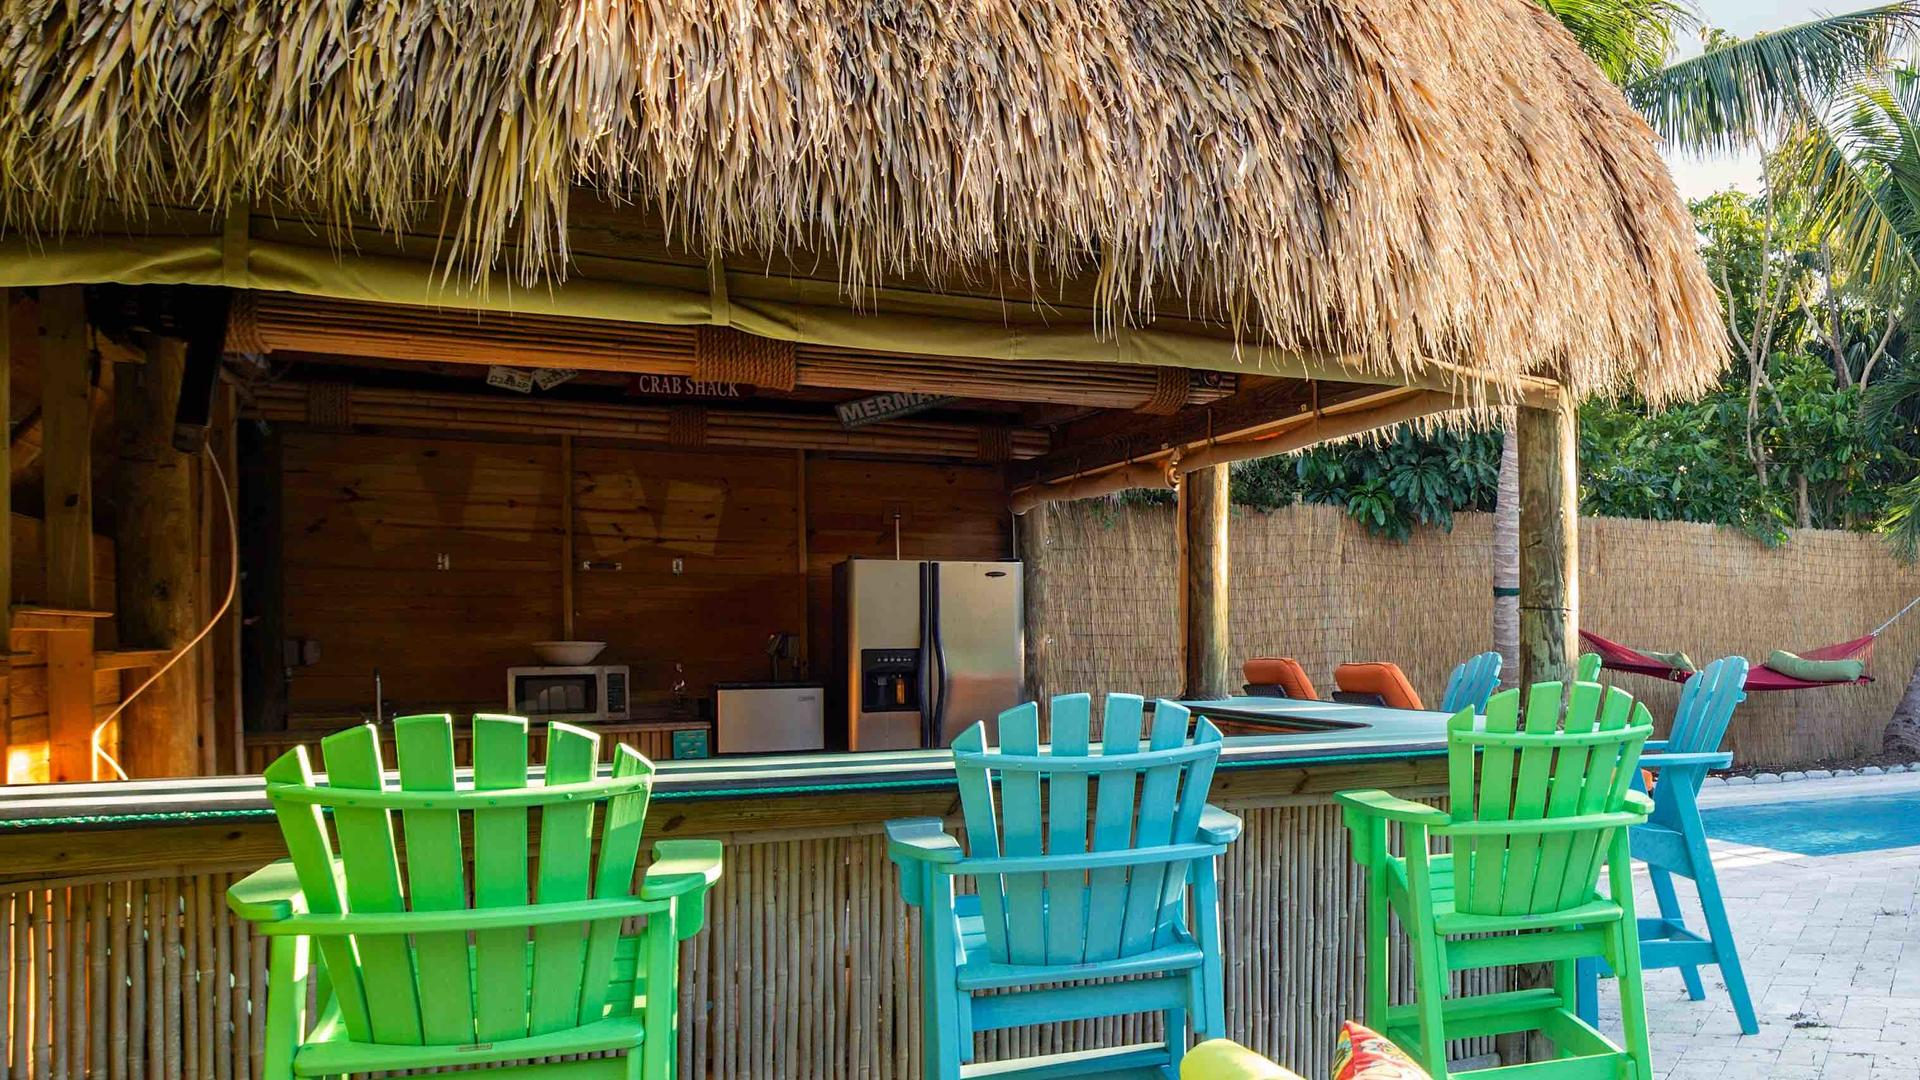 The Tiki Hut has bar seating, a fridge, and a microwave...